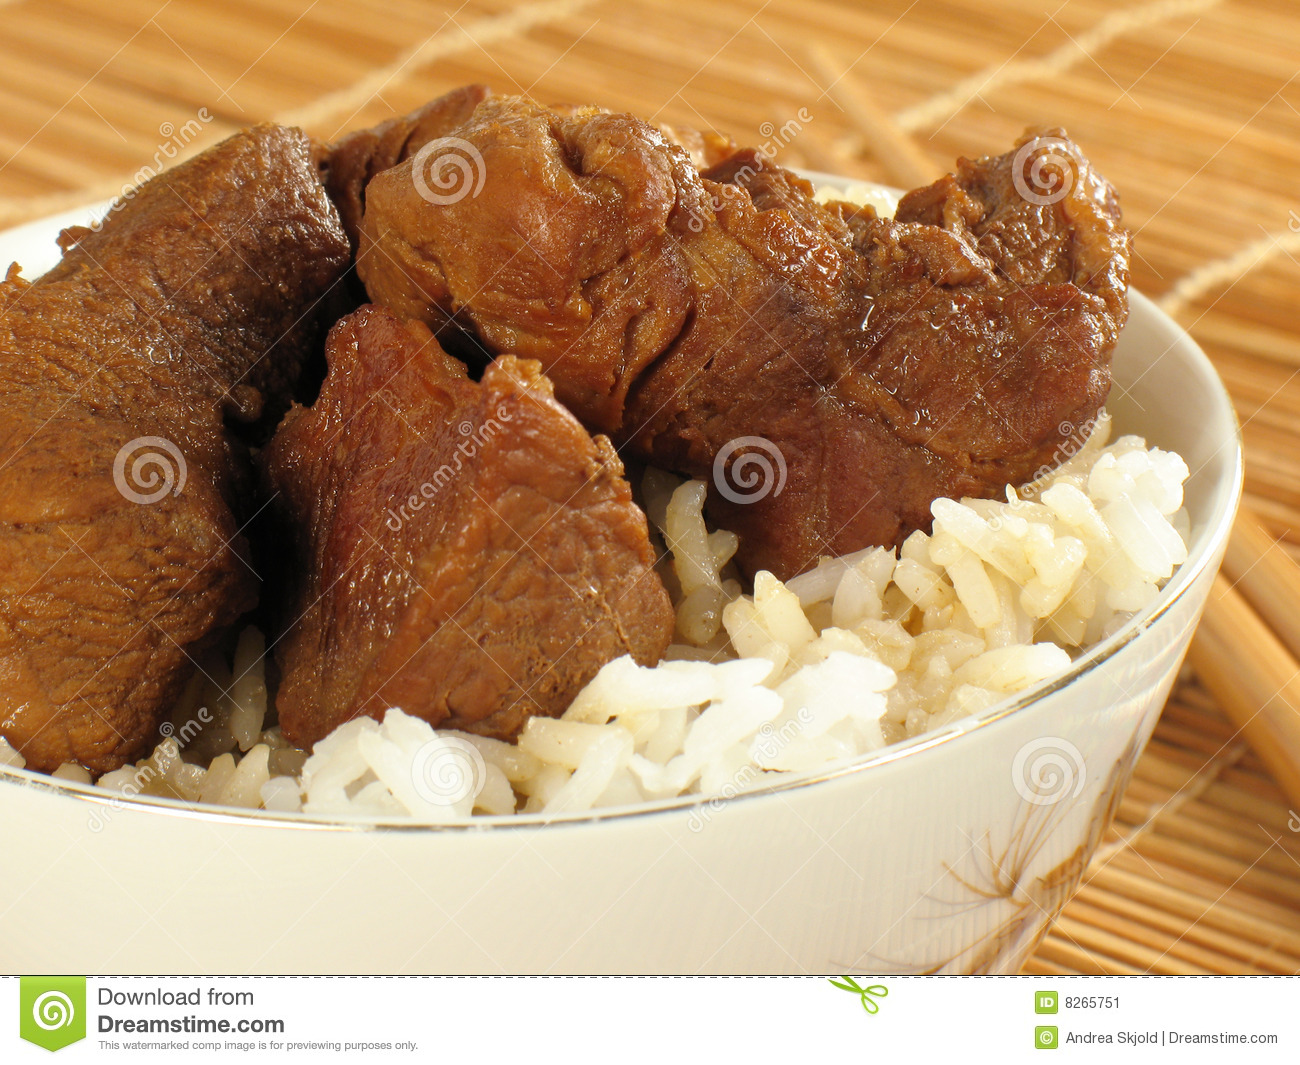 Asian Pork With Rice Stock Image - Image: 8265751